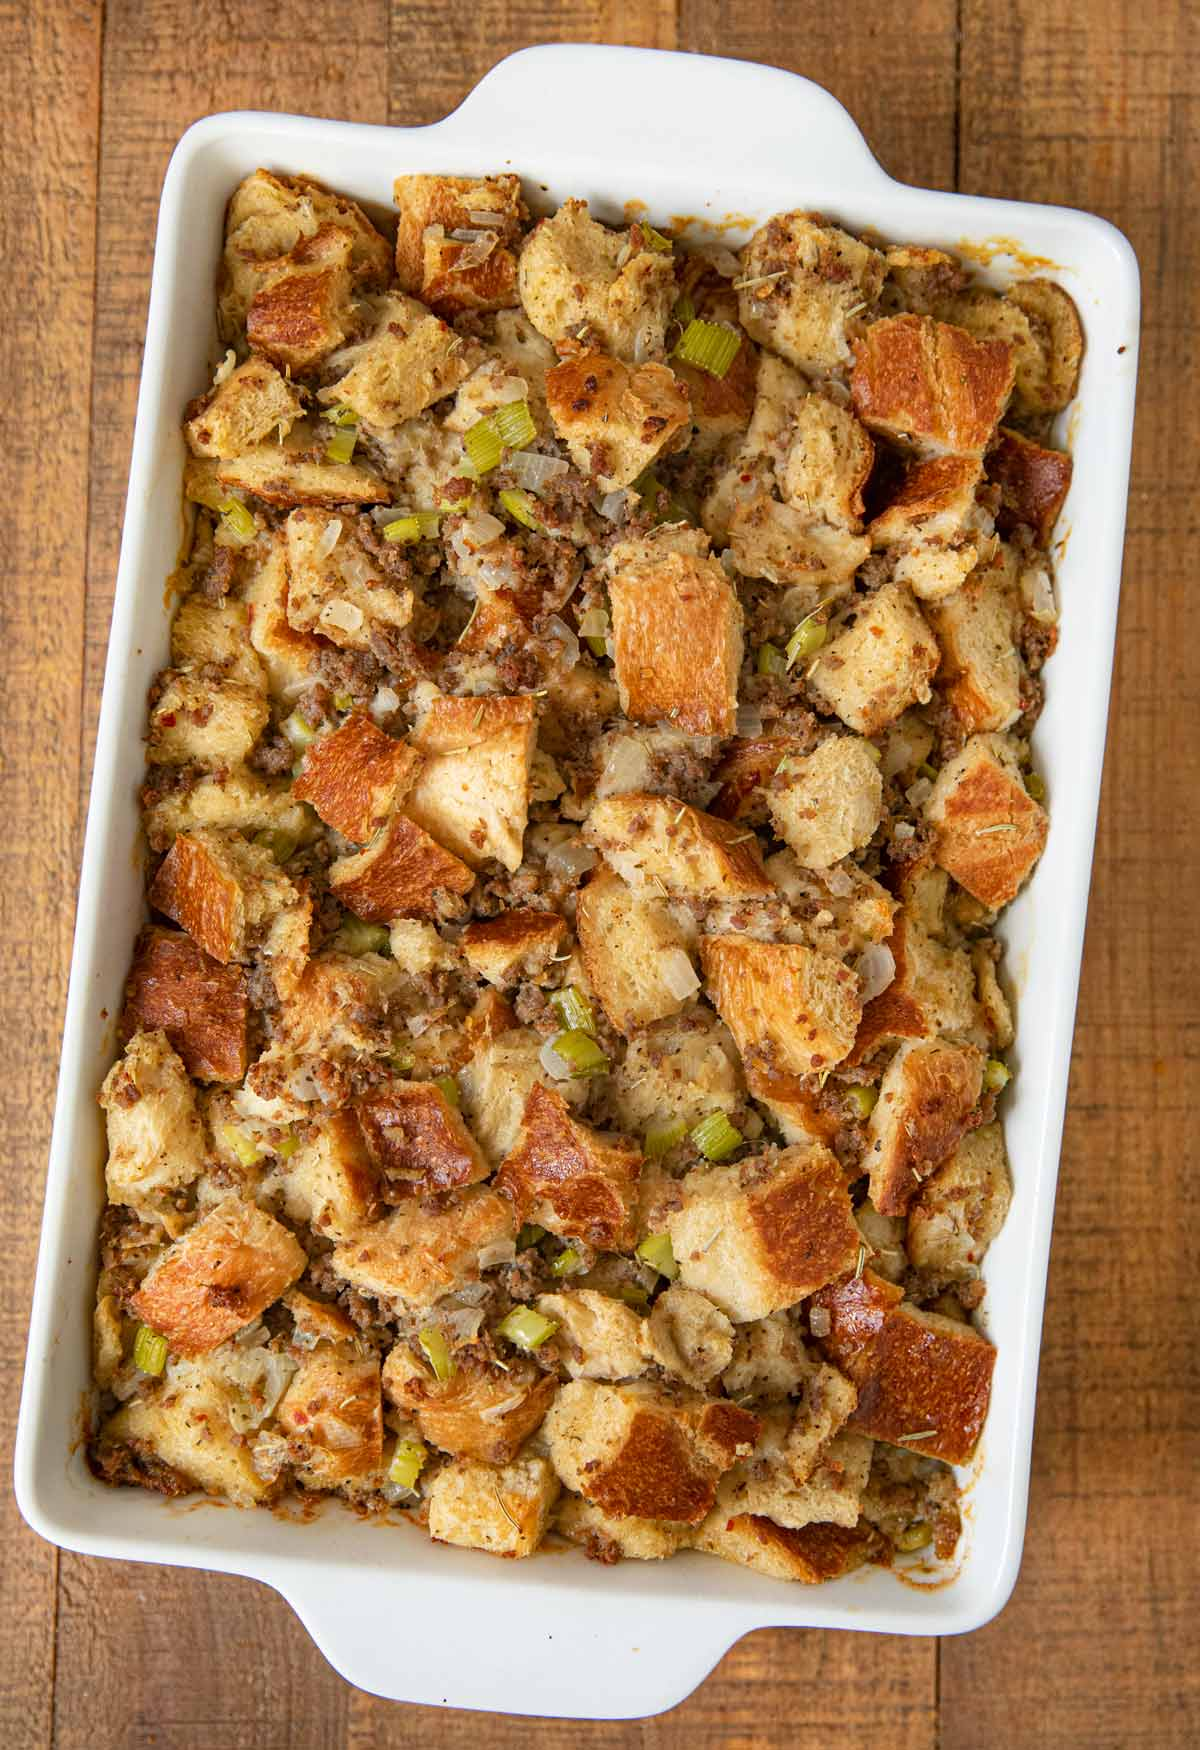 Sausage and Herb Stuffing after baking